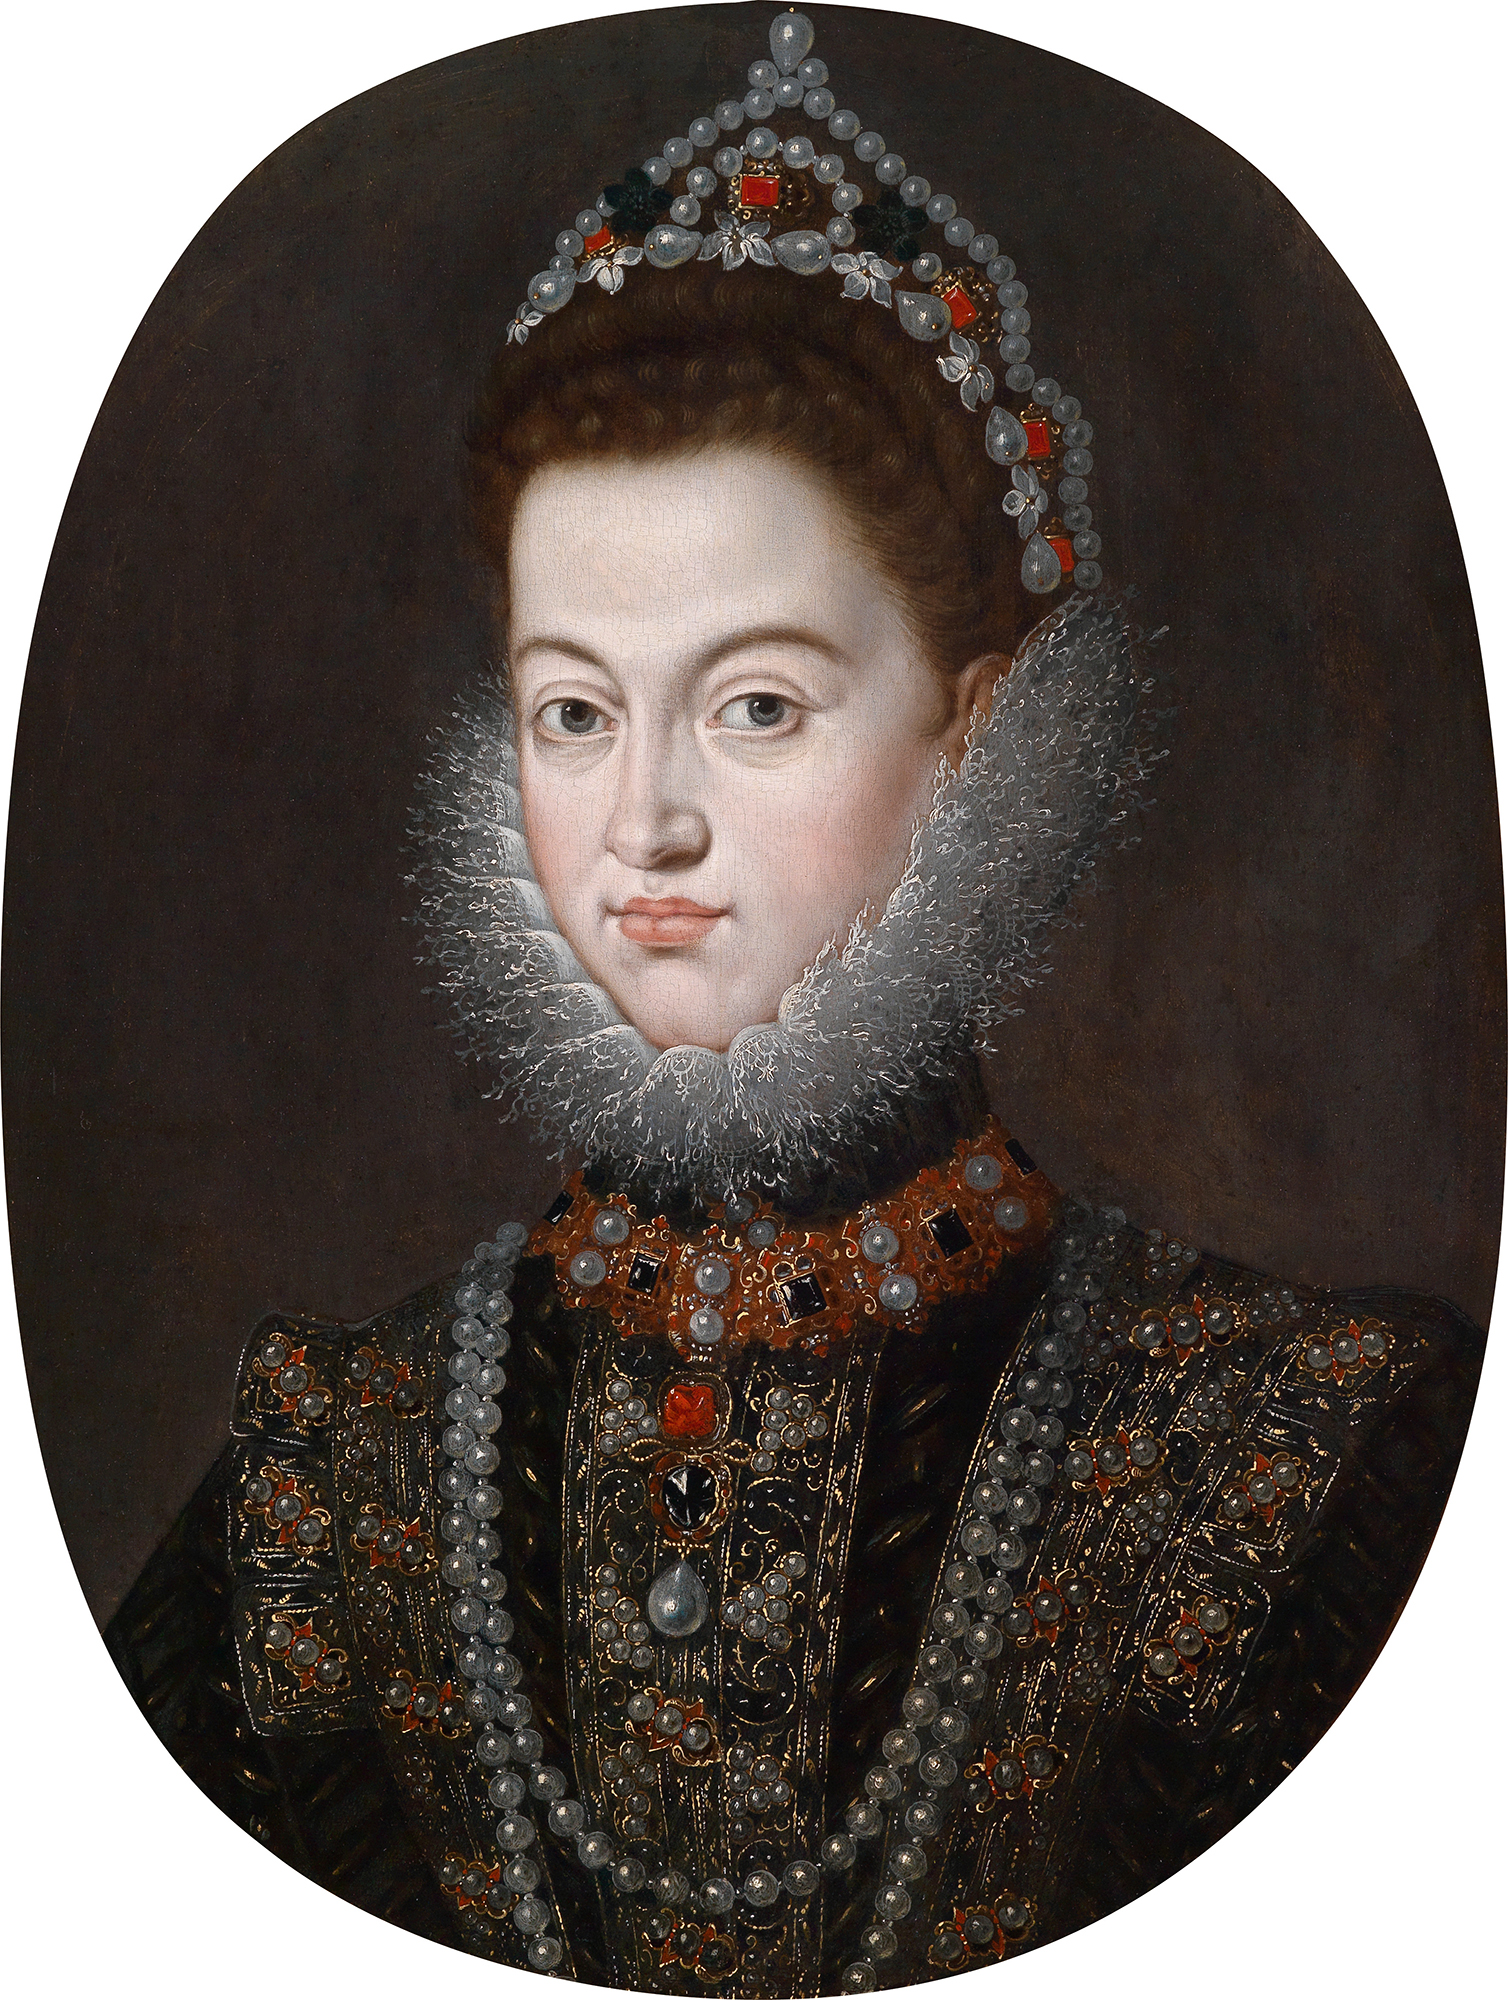 Portrait of Isabella Clara Eugenia (1566-1633), Sovereign of the Netherlands (with Albert of Austria) from 1598 to 1621; Governor of the Spanish Netherlands (1621-1633) | Portraits of Kings